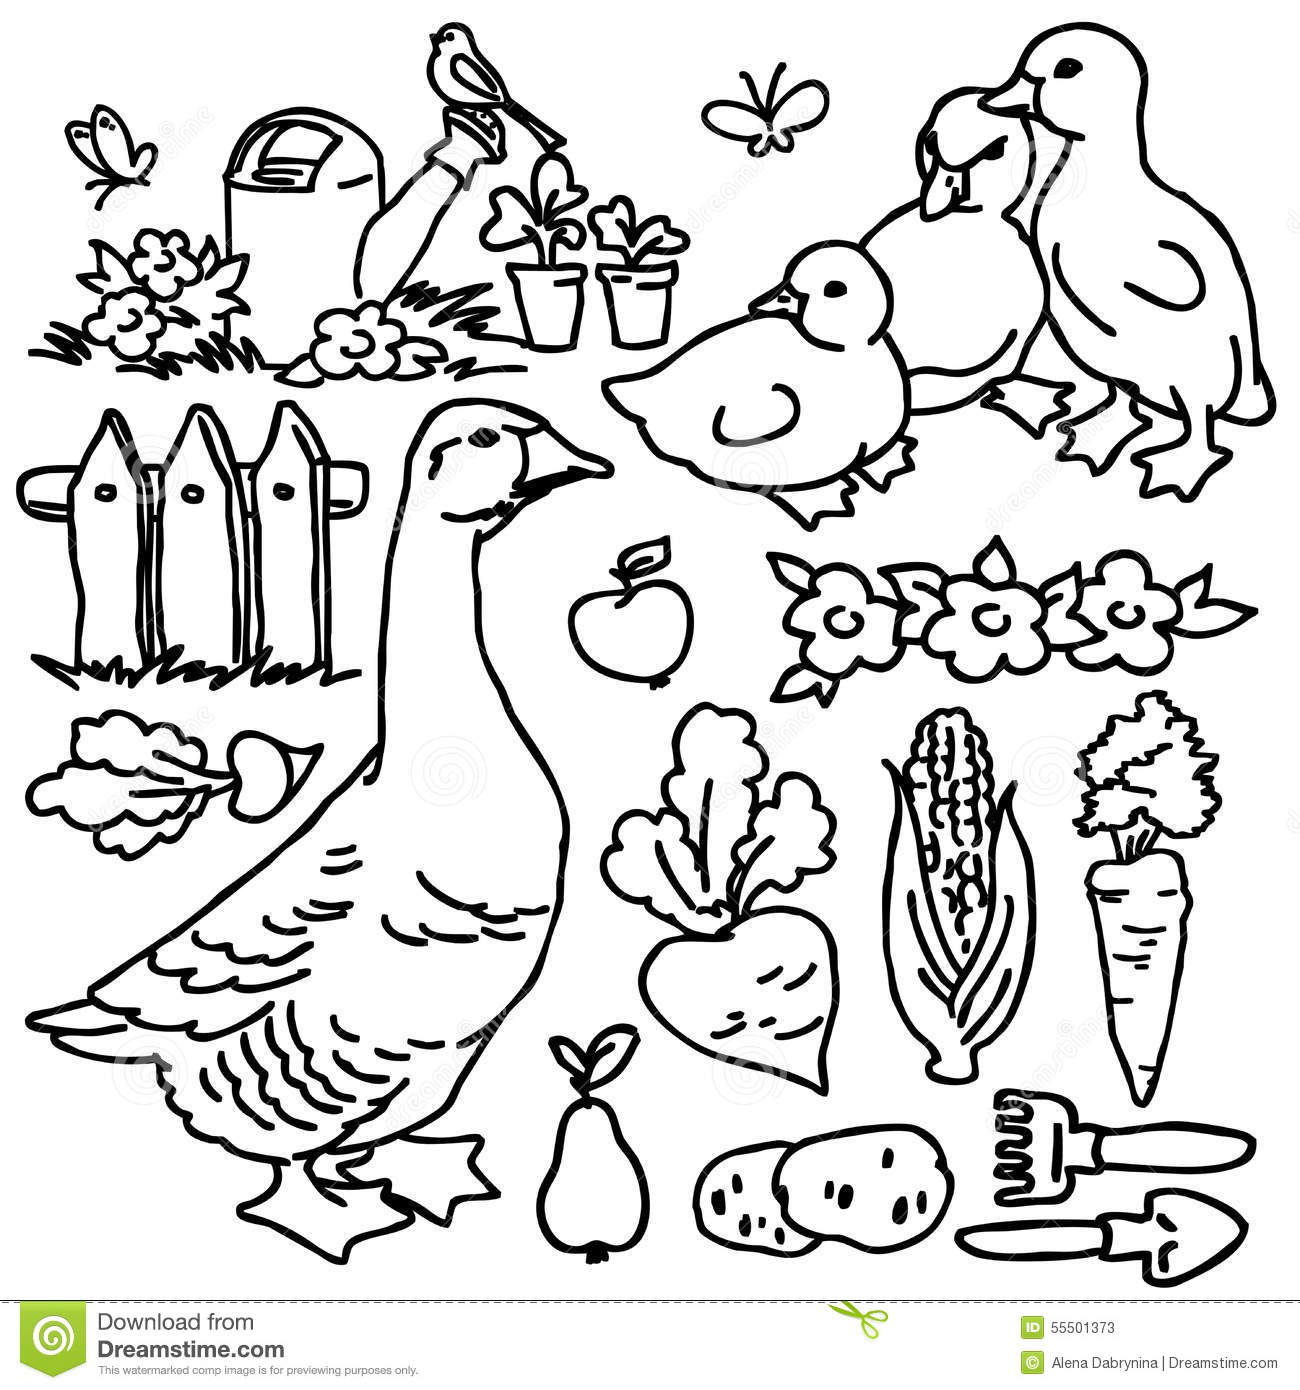 Garden Animals Coloring Pages : Coloring book cartoon farm goose and animals stock